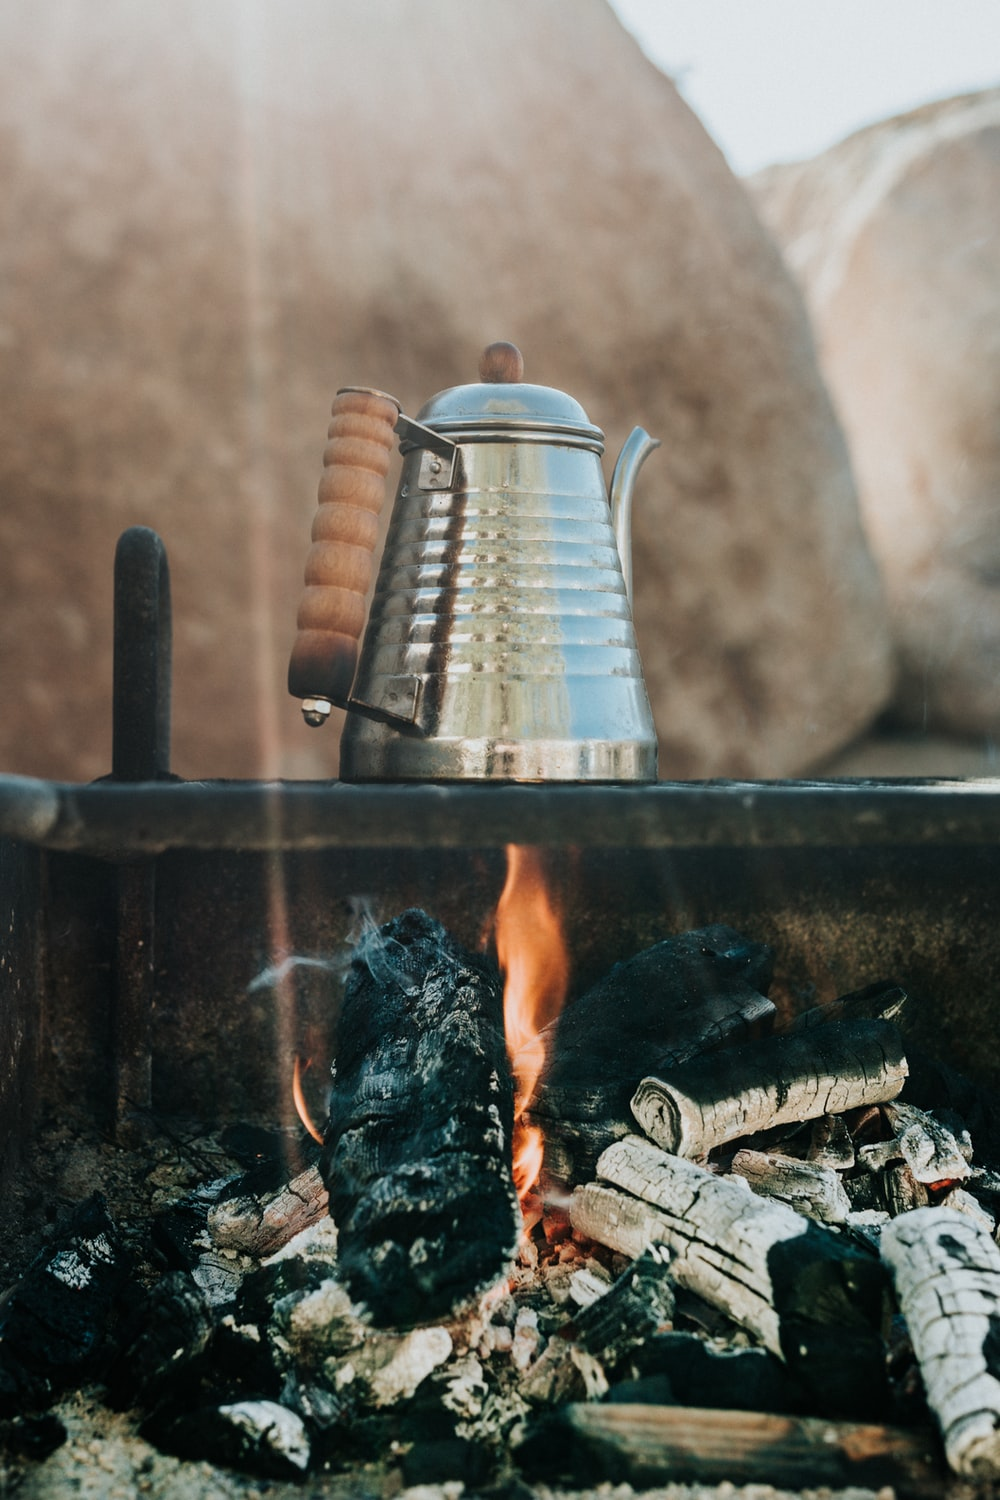 stainless steel kettle on fire